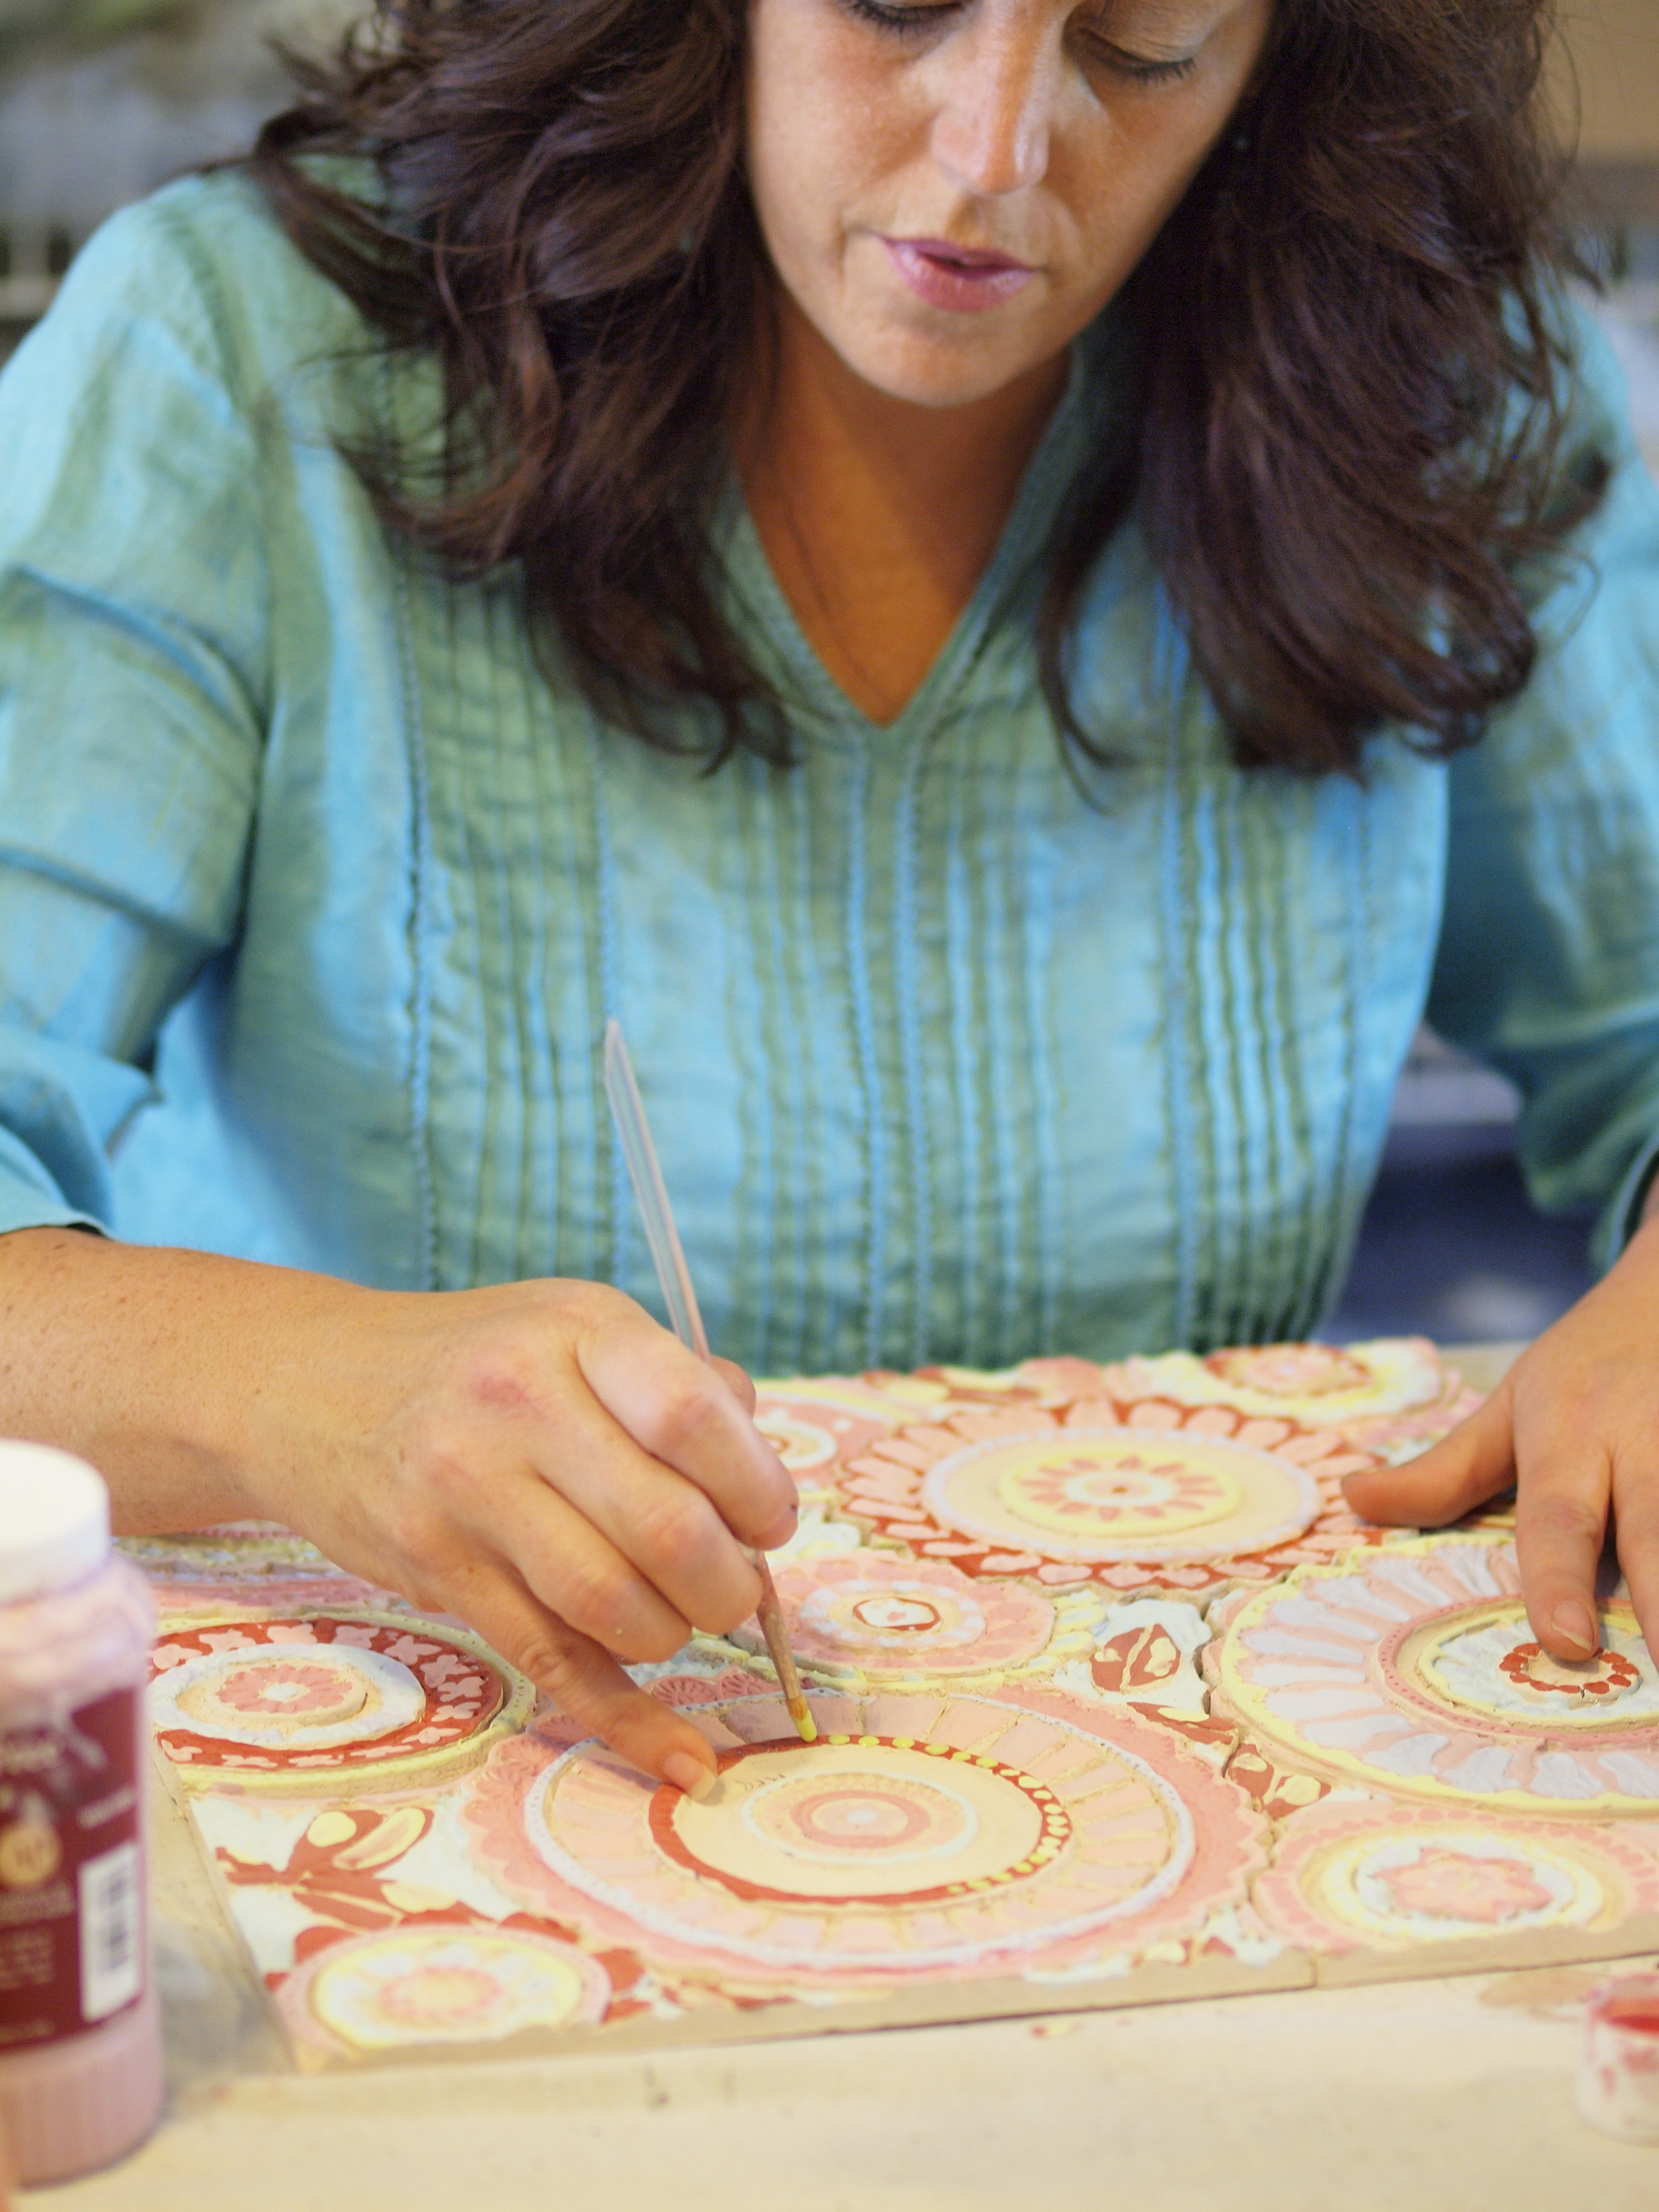 Romy painting on the several layers of glaze.